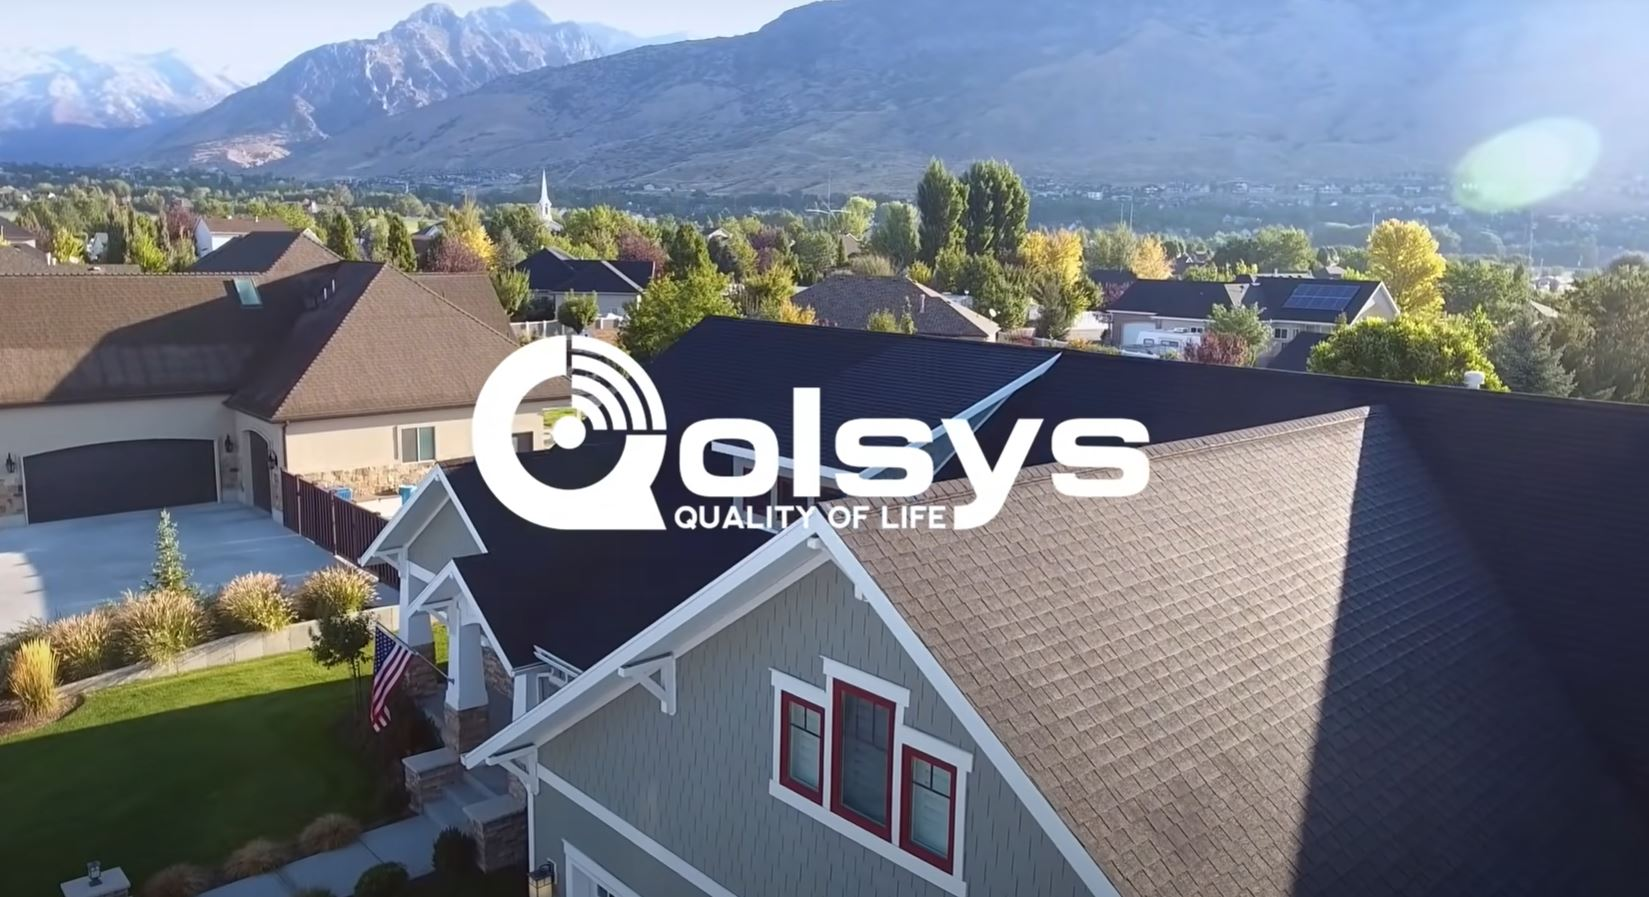 Qolsys home security systems